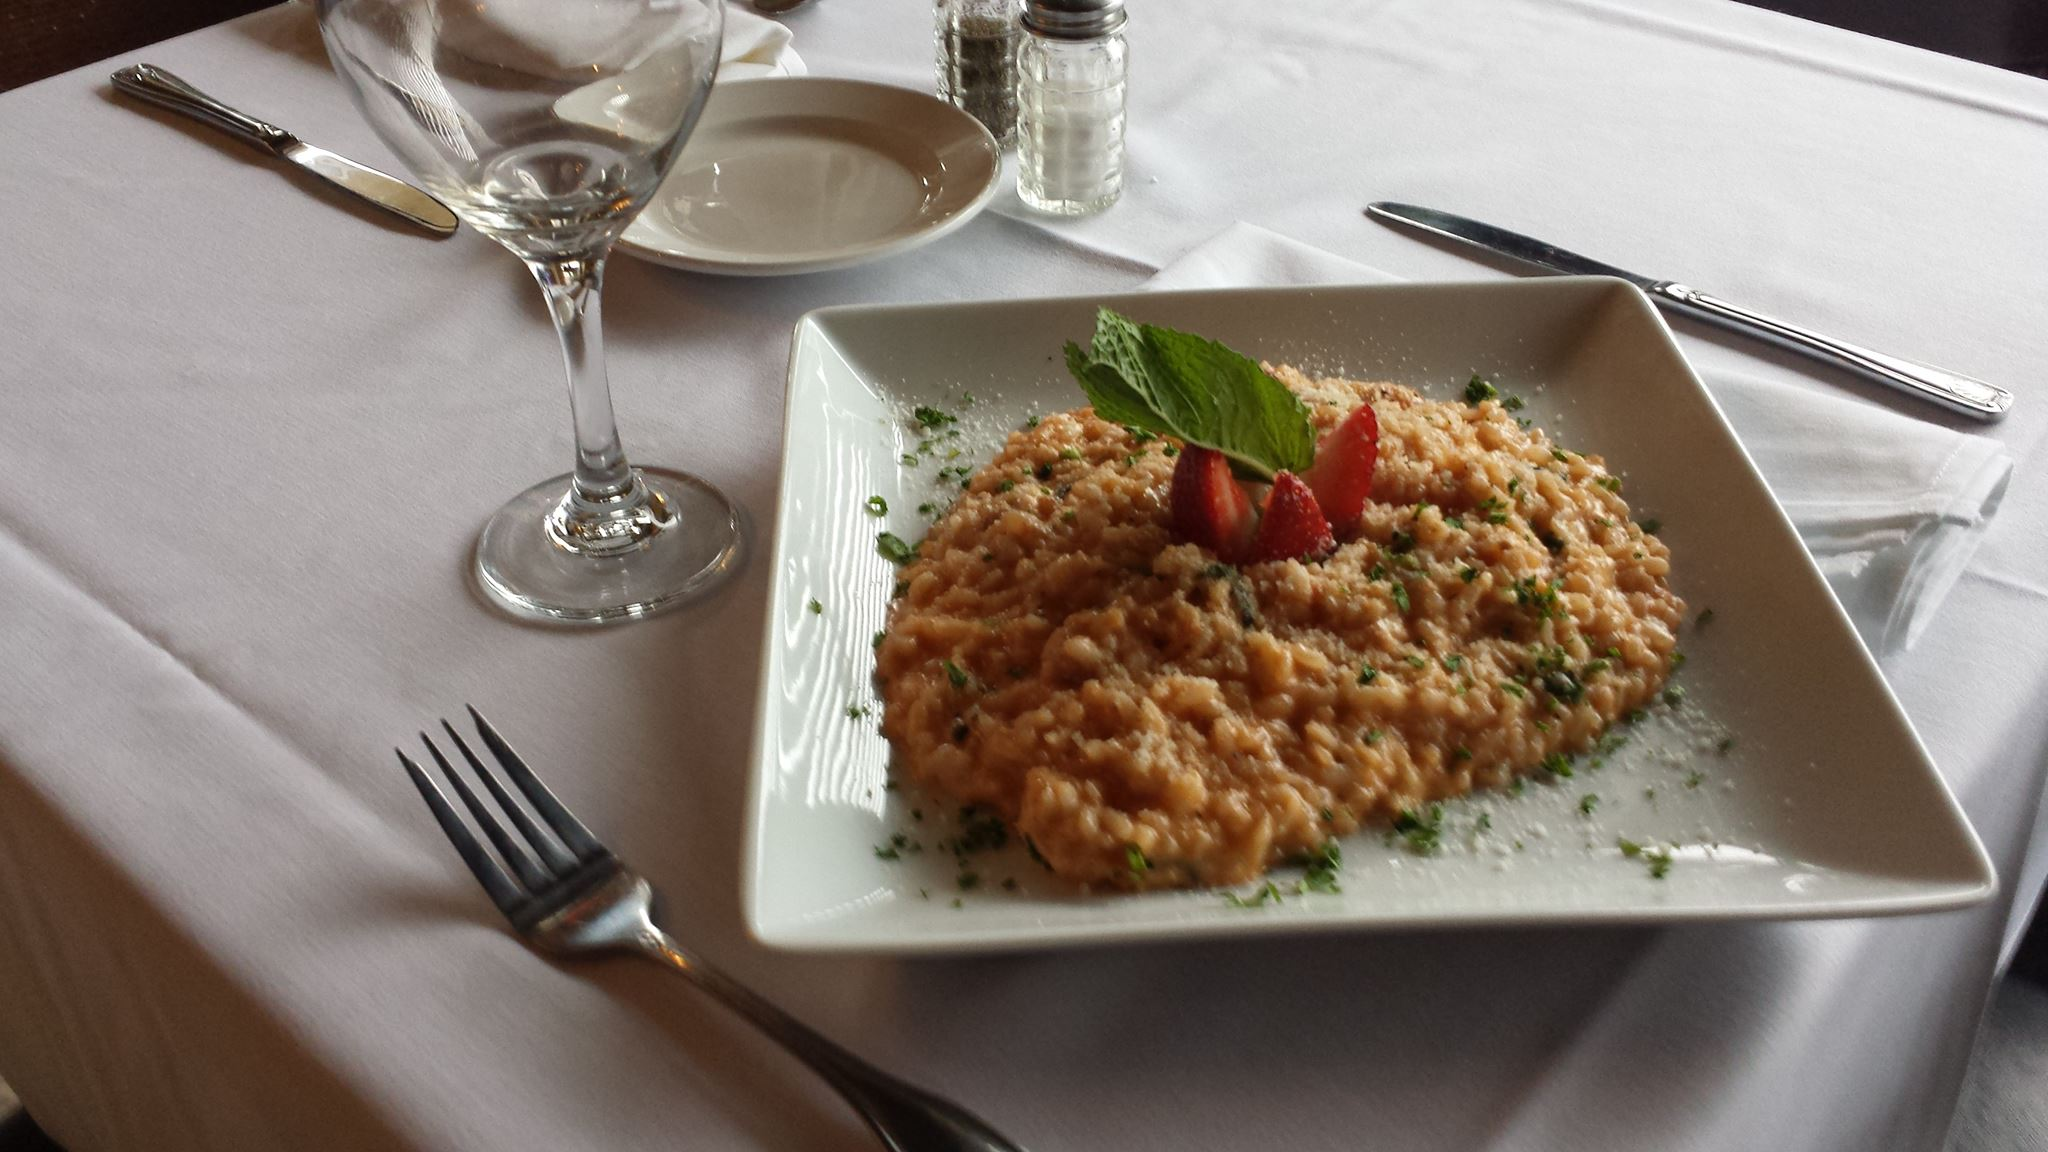 Risotto on dish